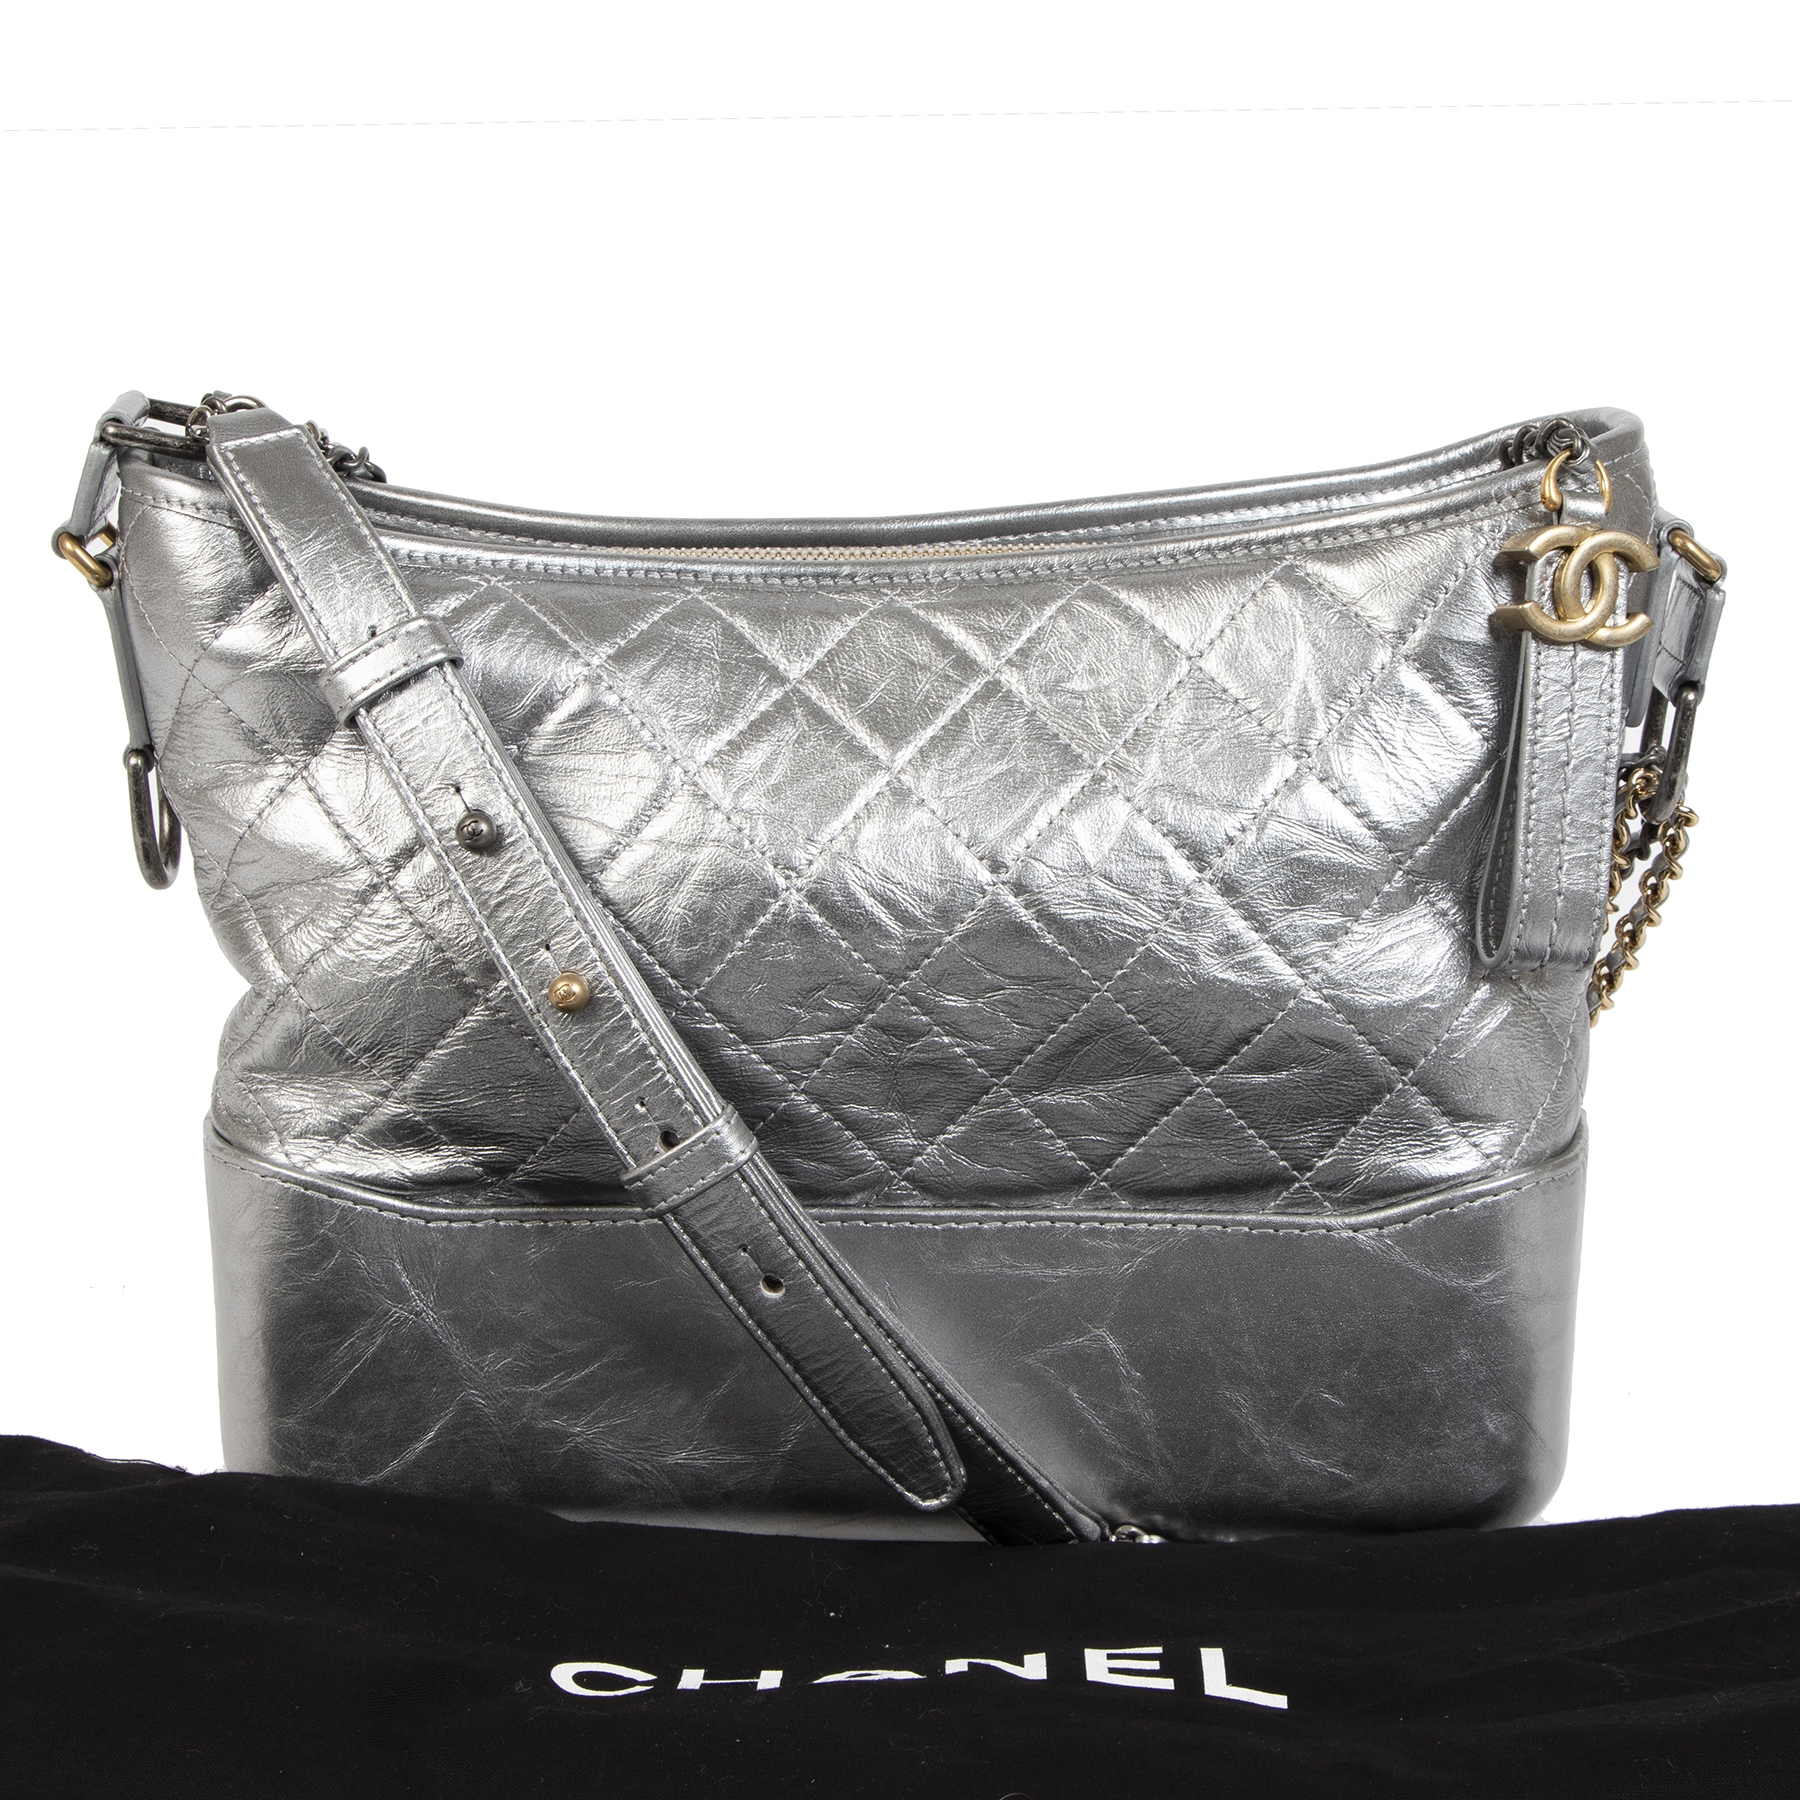 Chanel Gabrielle Silver Metallic Aged Calfskin Medium Hobo Bag